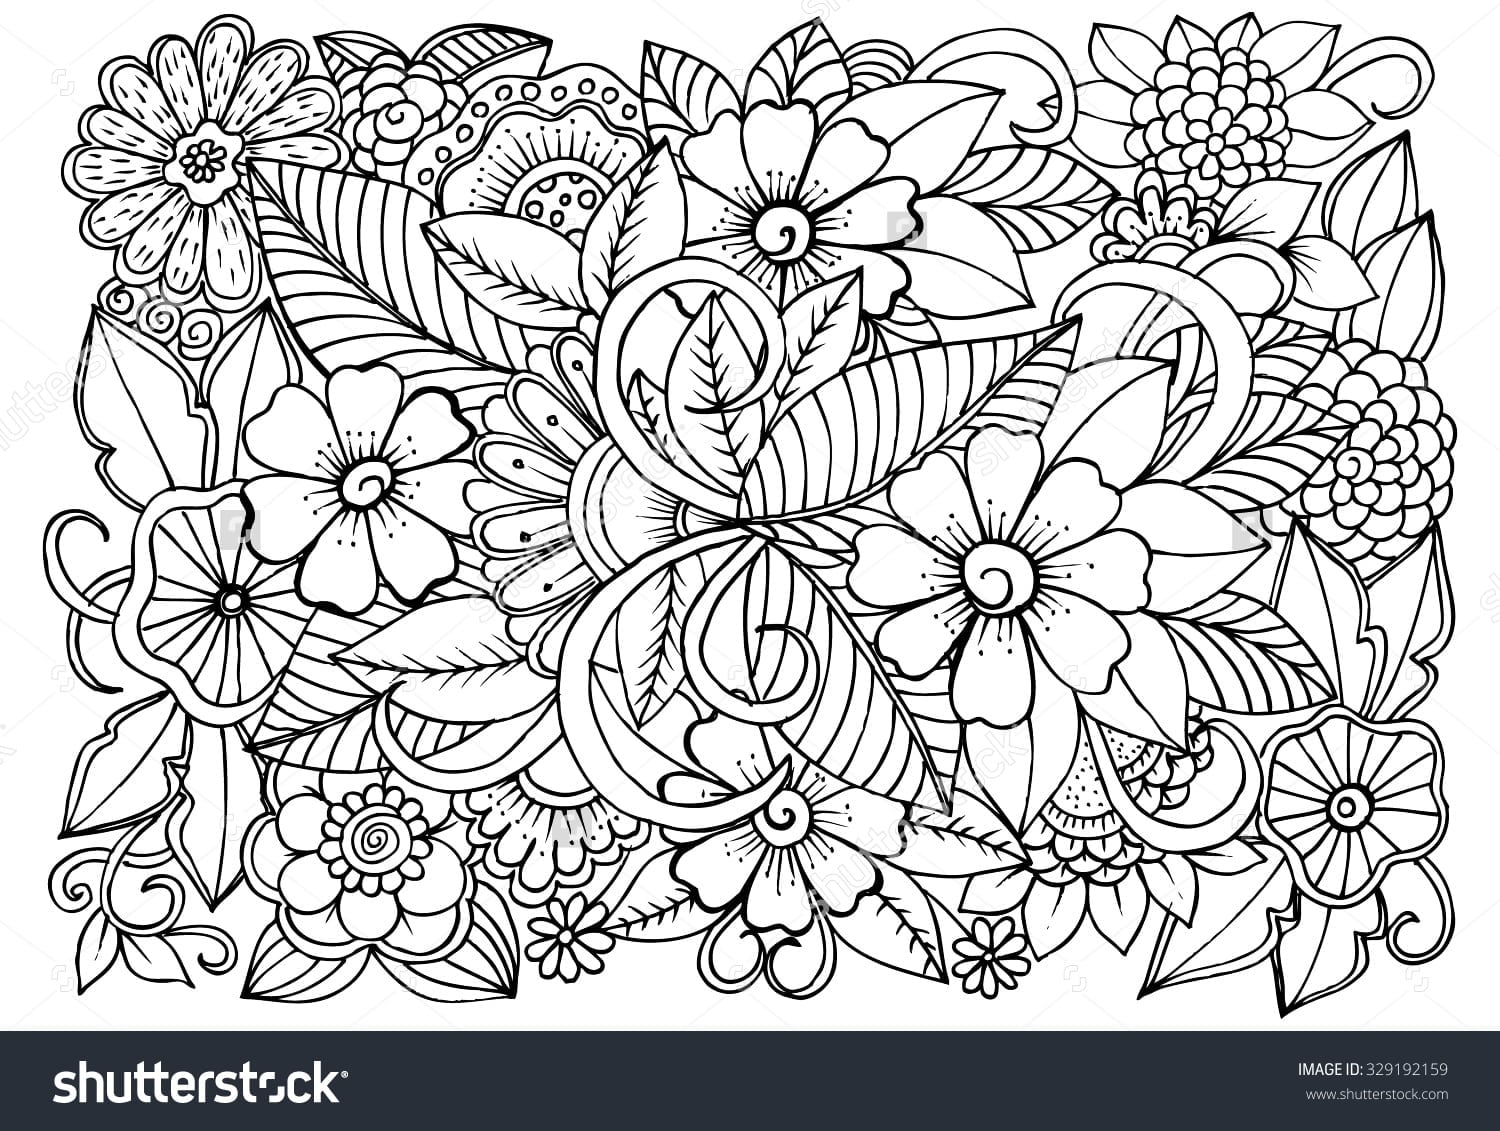 Flowers Coloring Flowers Great Coloring Book Flowers